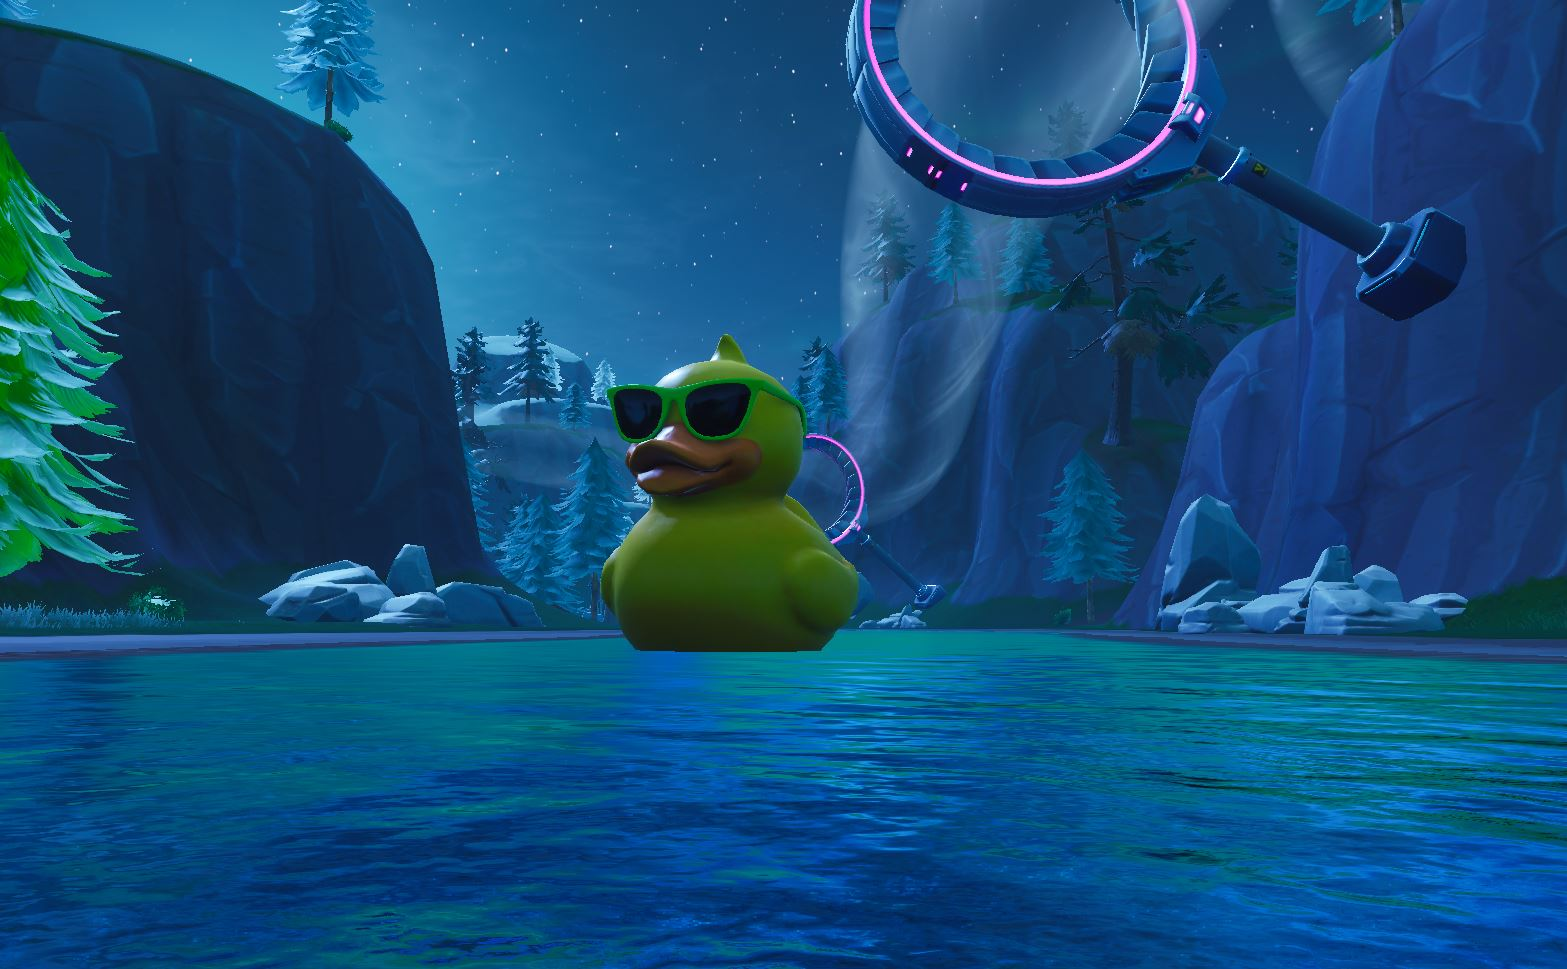 huge rubber ducky Fortnite